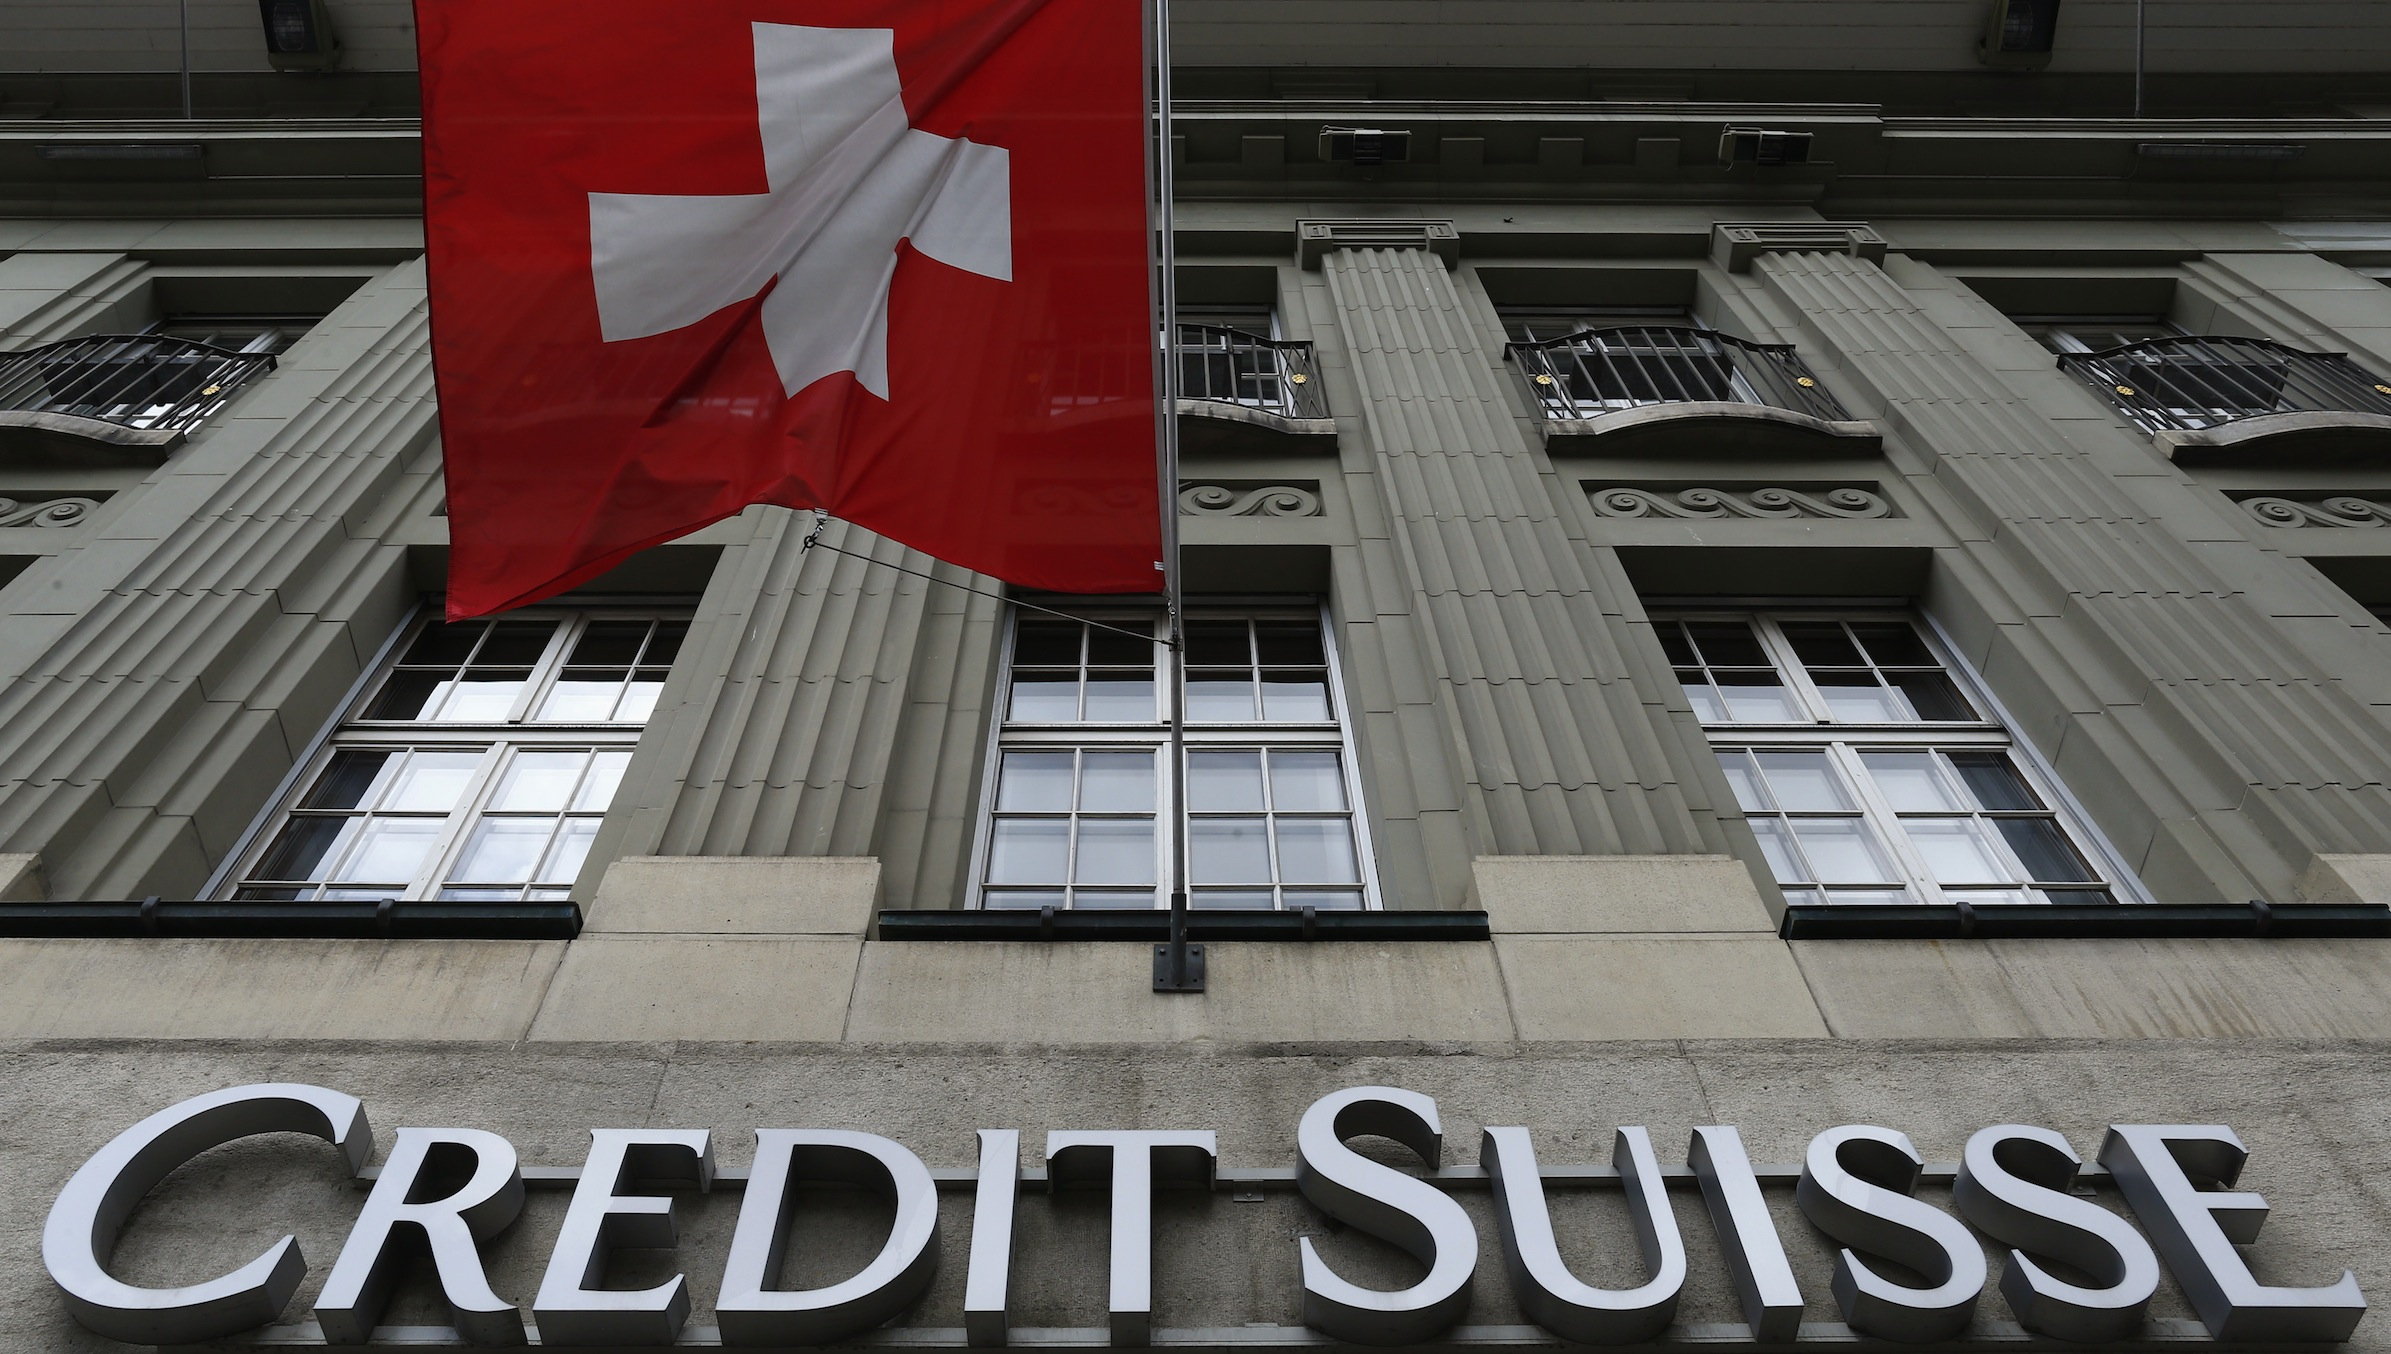 The logo of Swiss bank Credit Suisse is seen below the Swiss flag at a building in the Federal Square in Bern May 15, 2014. REUTERS/Ruben Sprich (SWITZERLAND - Tags: BUSINESS LOGO POLITICS) - RTR3PAPY